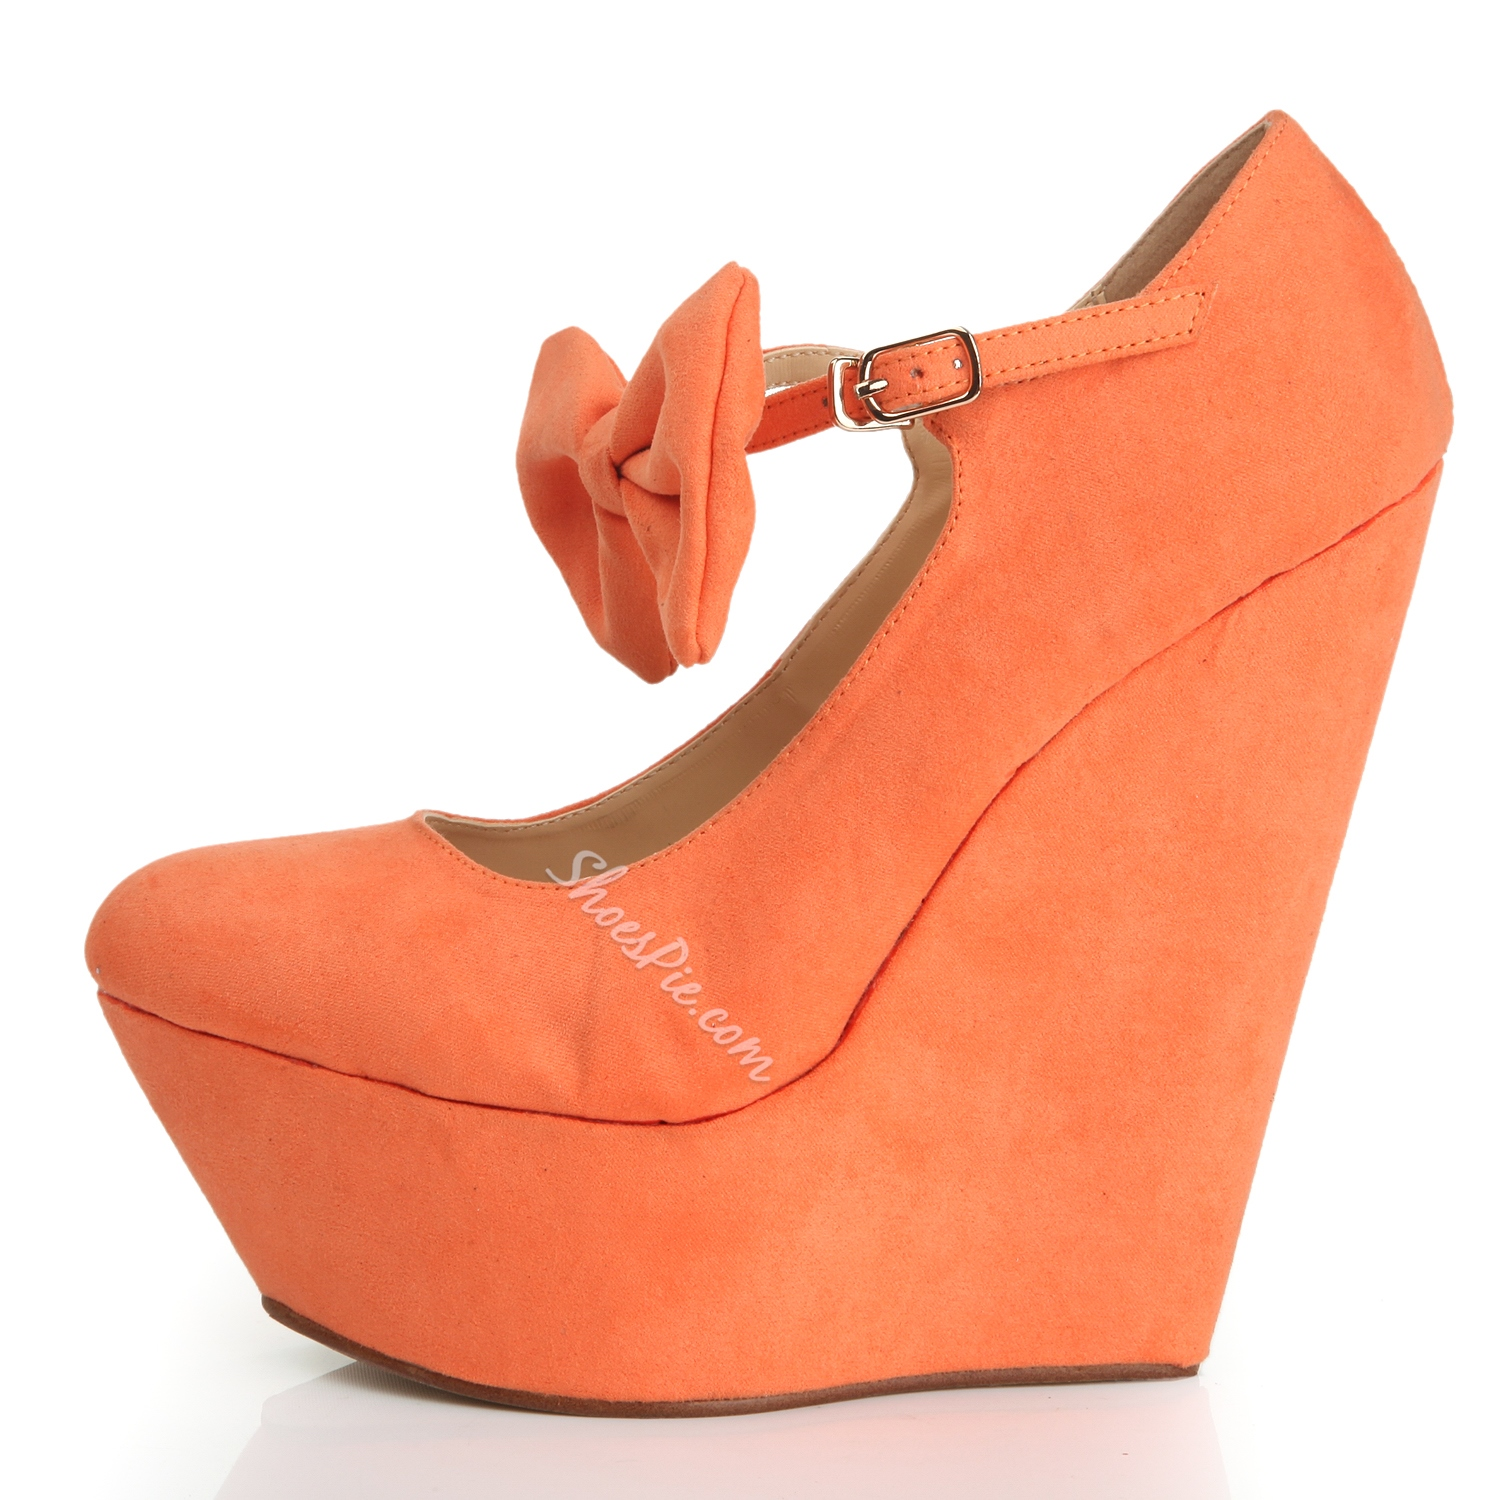 Sweet Yellow Closed-Toe Wedge Heel Bowknot Ankle Strap Pumps ...